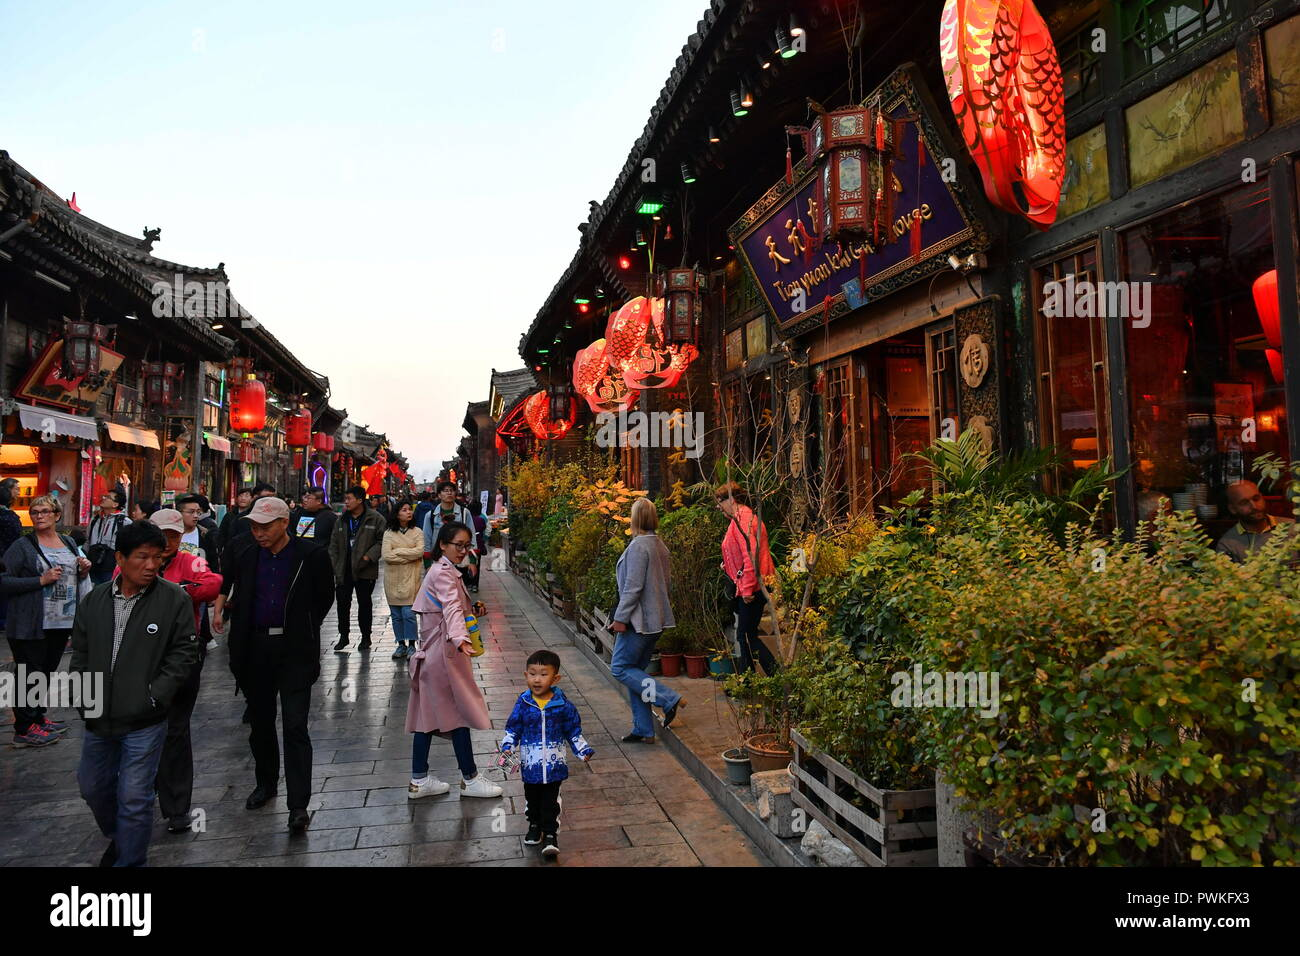 (181017) -- PINGYAO, Oct. 17, 2018 (Xinhua) -- Tourists walk on an old street of the ancient walled city of Pingyao in Jinzhong, north China's Shanxi Province, on Oct. 16, 2018. The ancient walled city of Pingyao was built in the 14th century, and was named a UNESCO world heritage in 1997, as 'an exceptionally well-preserved example of a traditional Han Chinese city.' The city boomed in the 19th century as China's financial center, as Shanxi merchants expanded their businesses across the country. Now, the well-preserved compounds of these affluent merchants and some emerging modern elements li - Stock Image